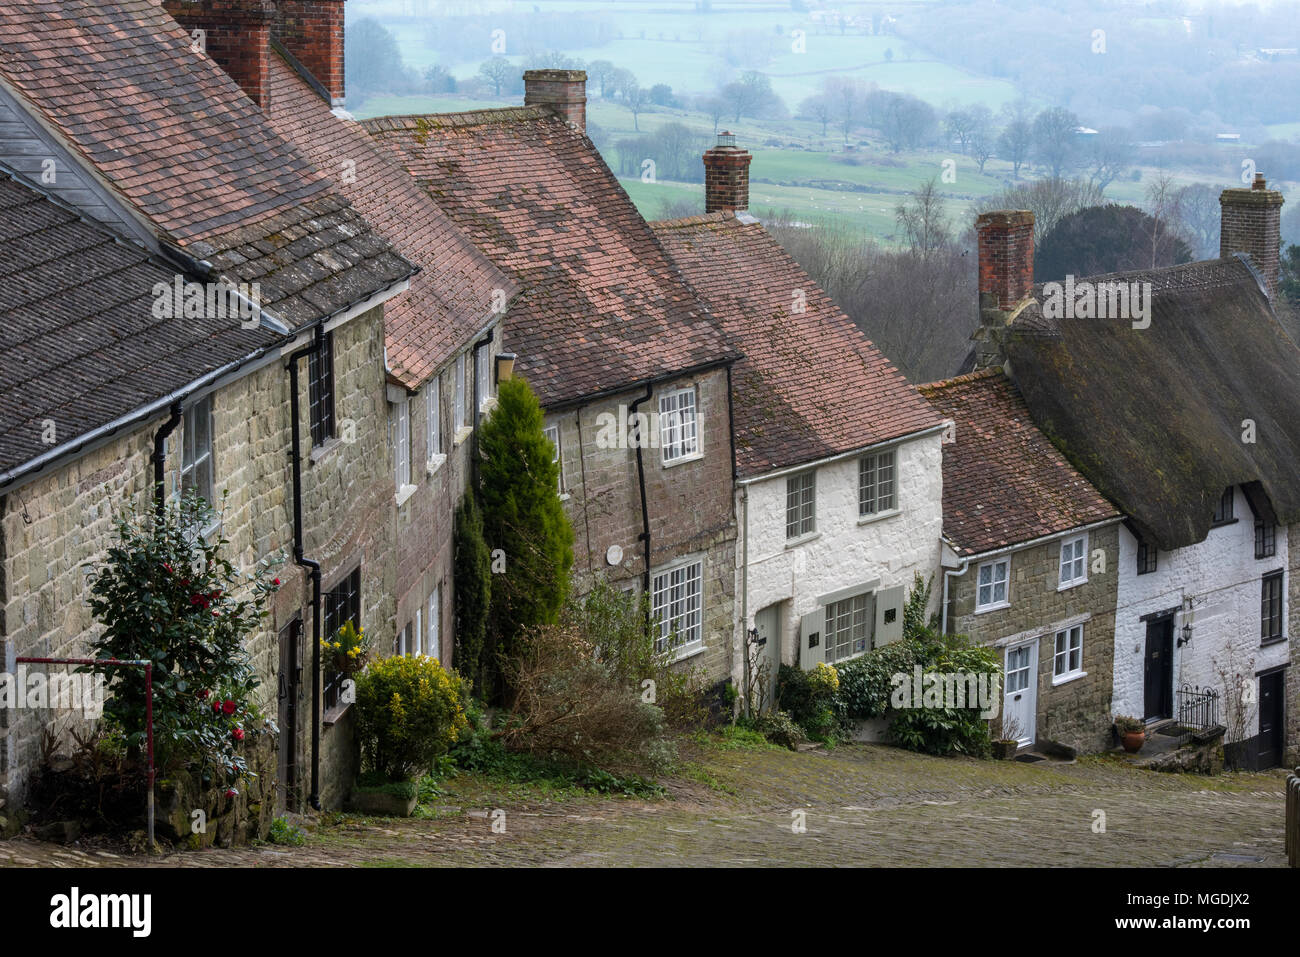 The beautiful dorset countryside and typically English thatch cottages at gold hill in Shaftesbury. Scenery and English countryside houses and cobbled Stock Photo